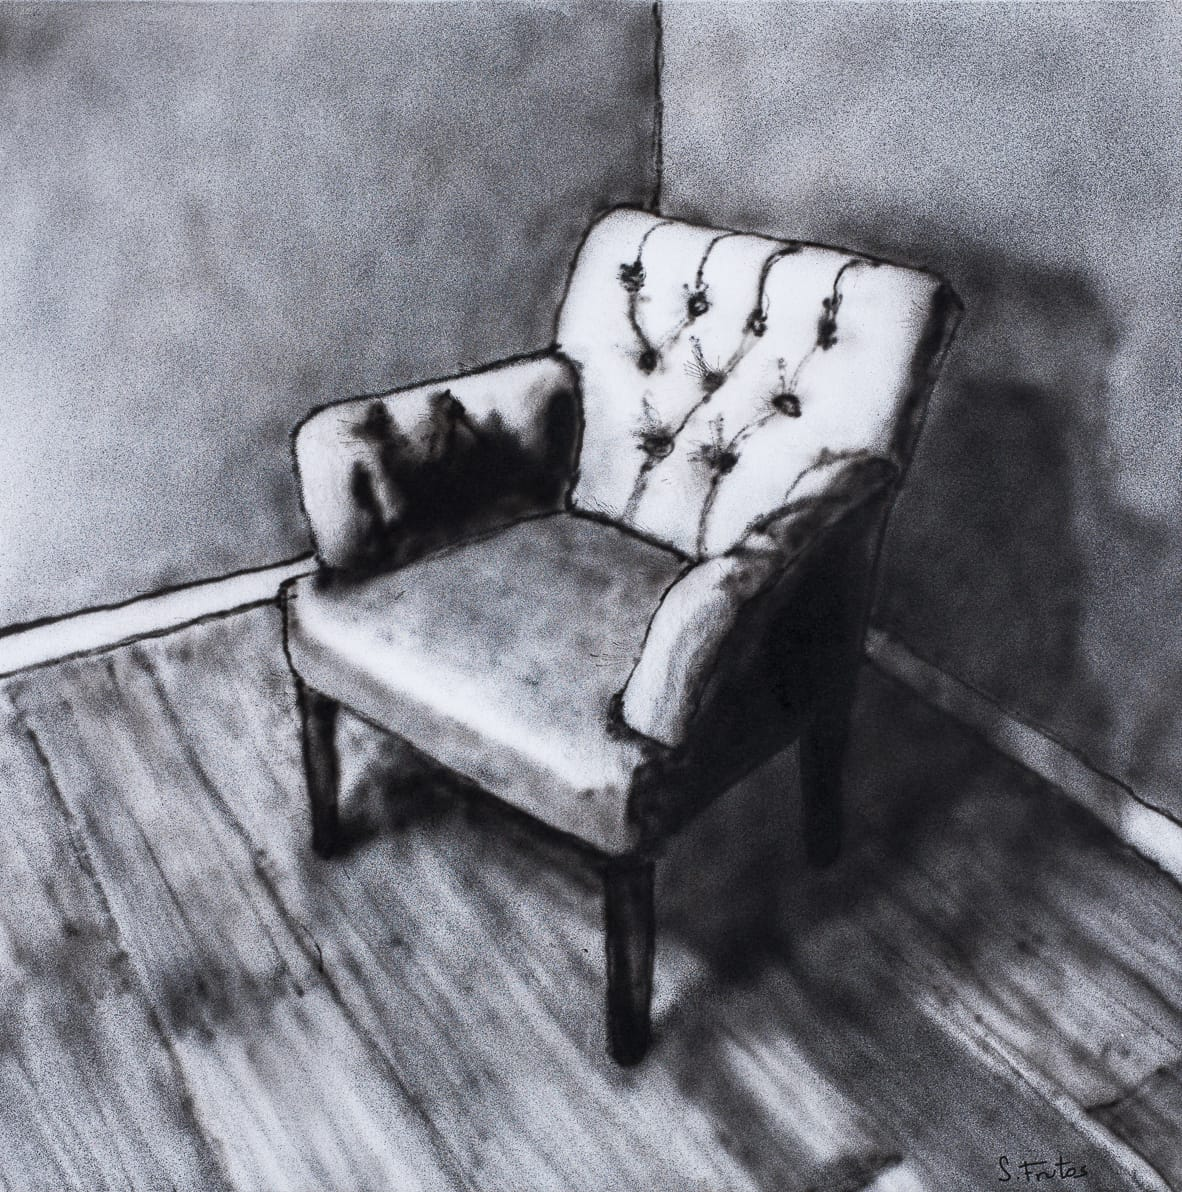 Couch, Amsterdam. Ink on paper on wood, 30 x 30 cm, 2018